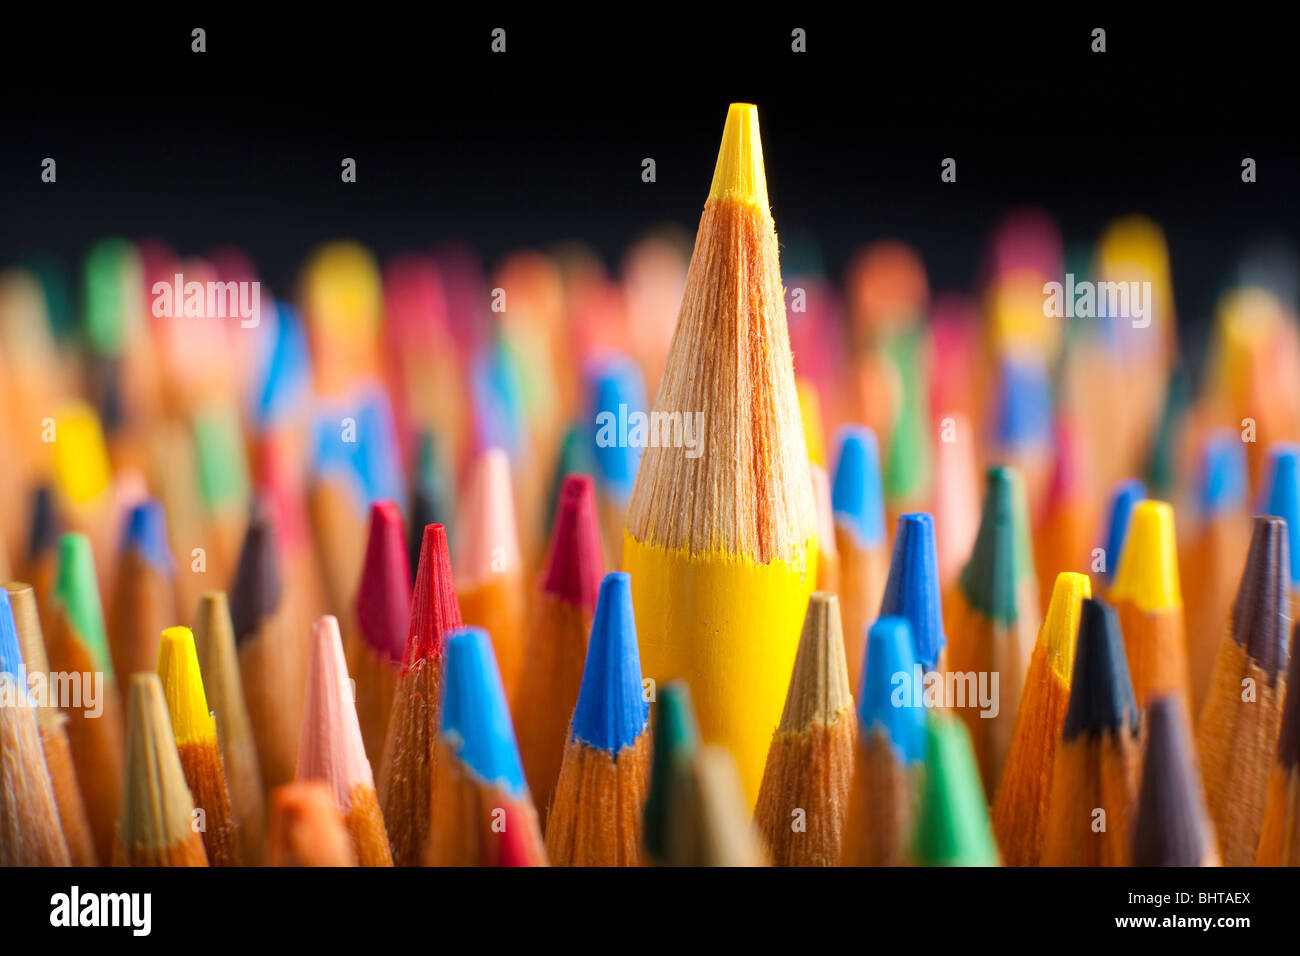 Color pencils representing the concept of Standing out from the crowd Stock Photo